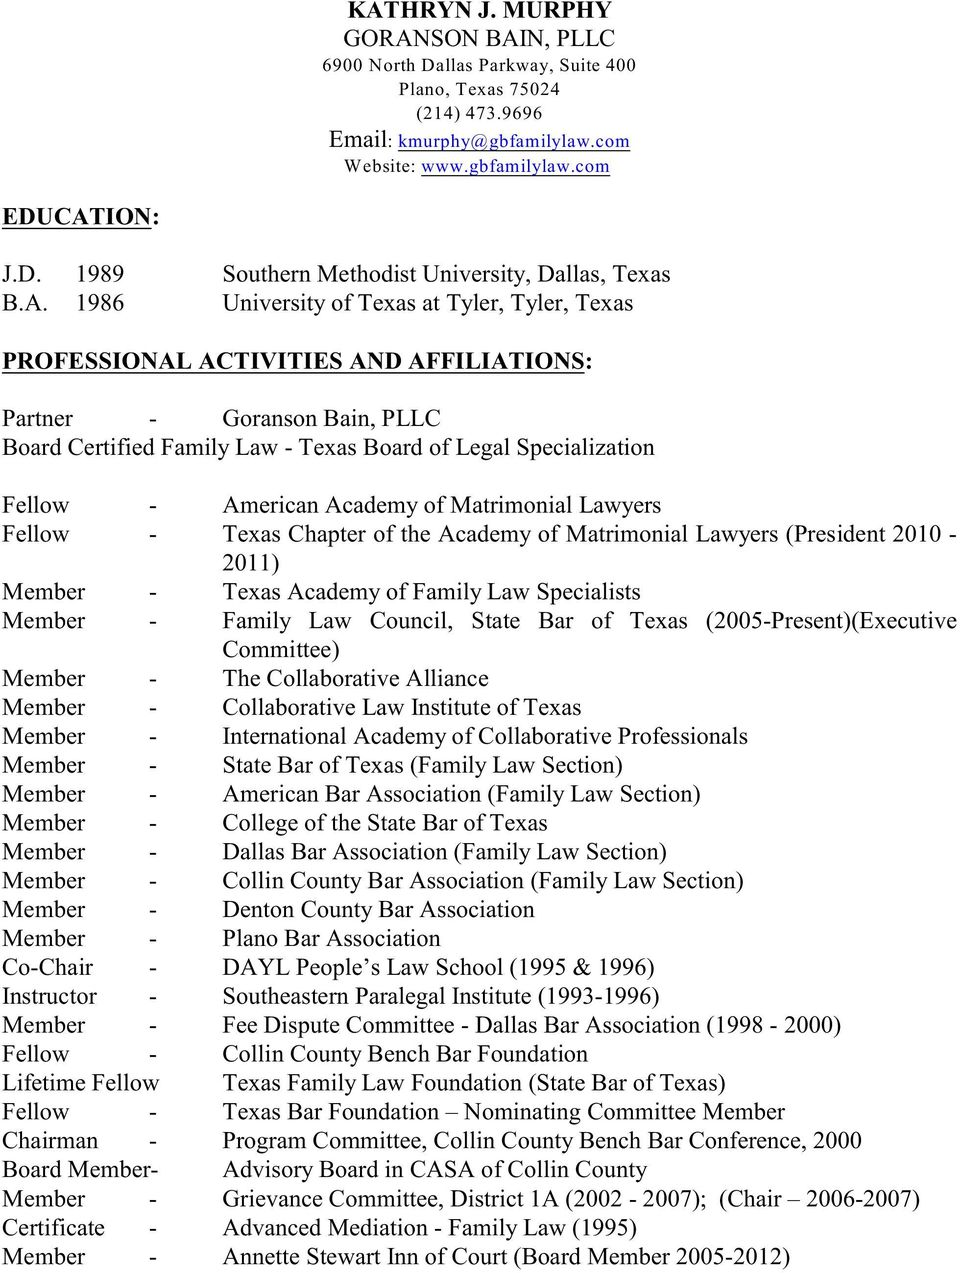 American Academy of Matrimonial Lawyers Fellow - Texas Chapter of the Academy of Matrimonial Lawyers (President 2010-2011) Member - Texas Academy of Family Law Specialists Member - Family Law